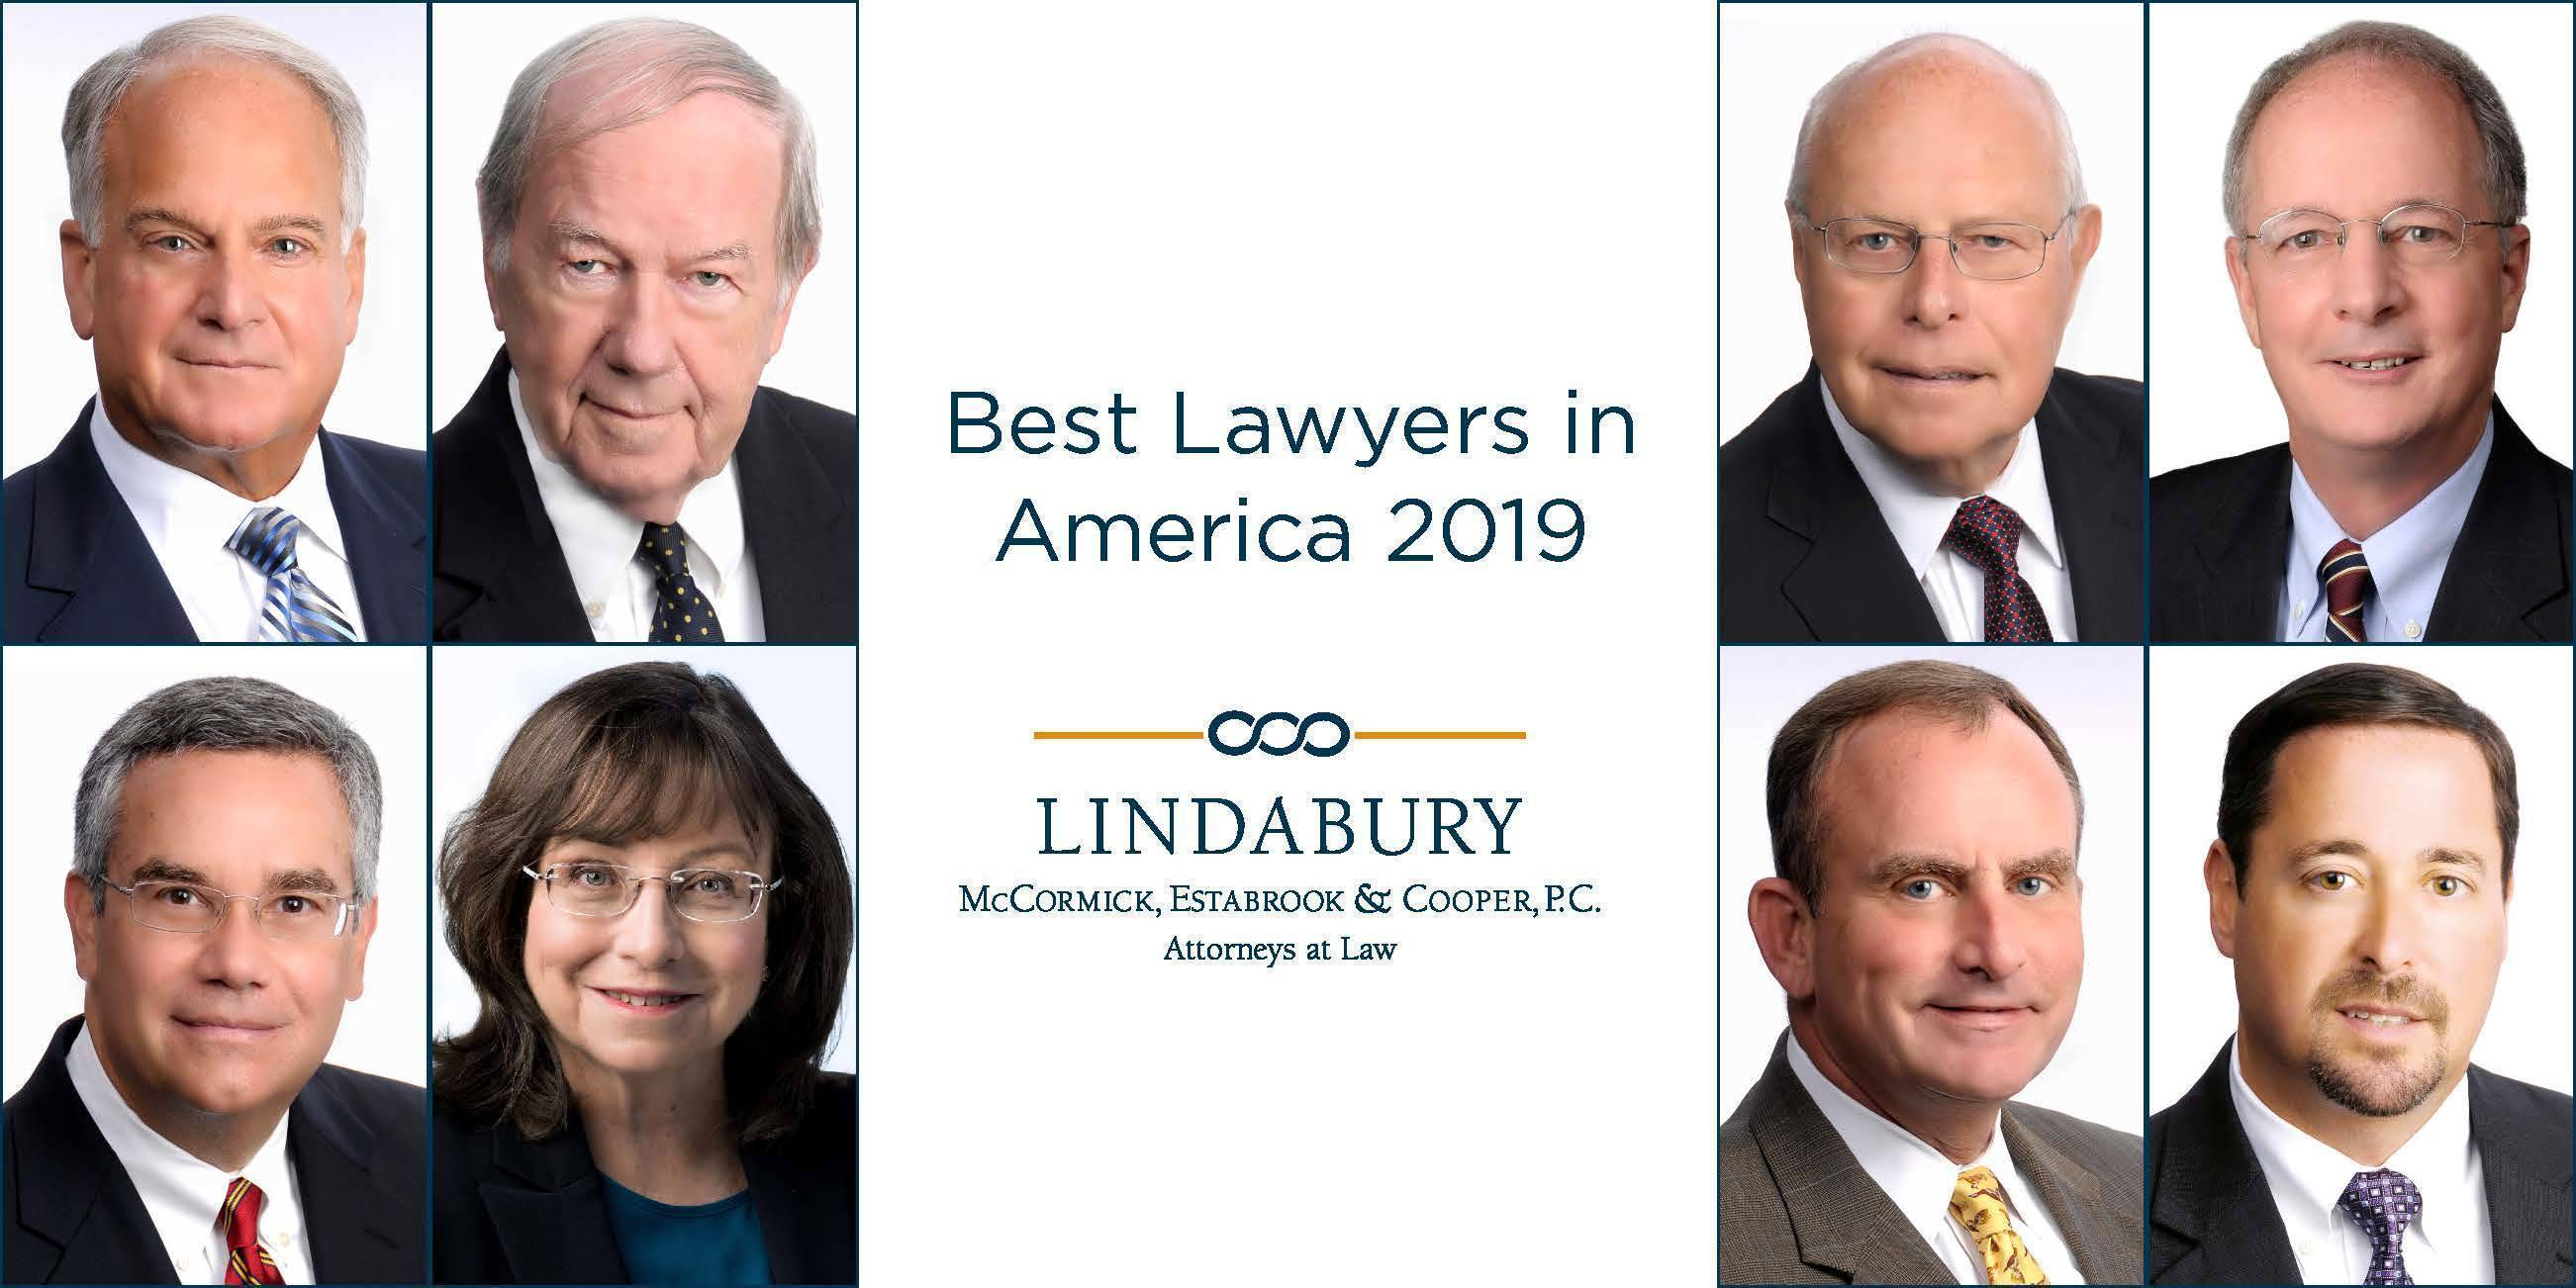 8 Lindabury, McCormick, Estabrook & Cooper, P.C. Attorneys Named to 2019 Best Lawyers List